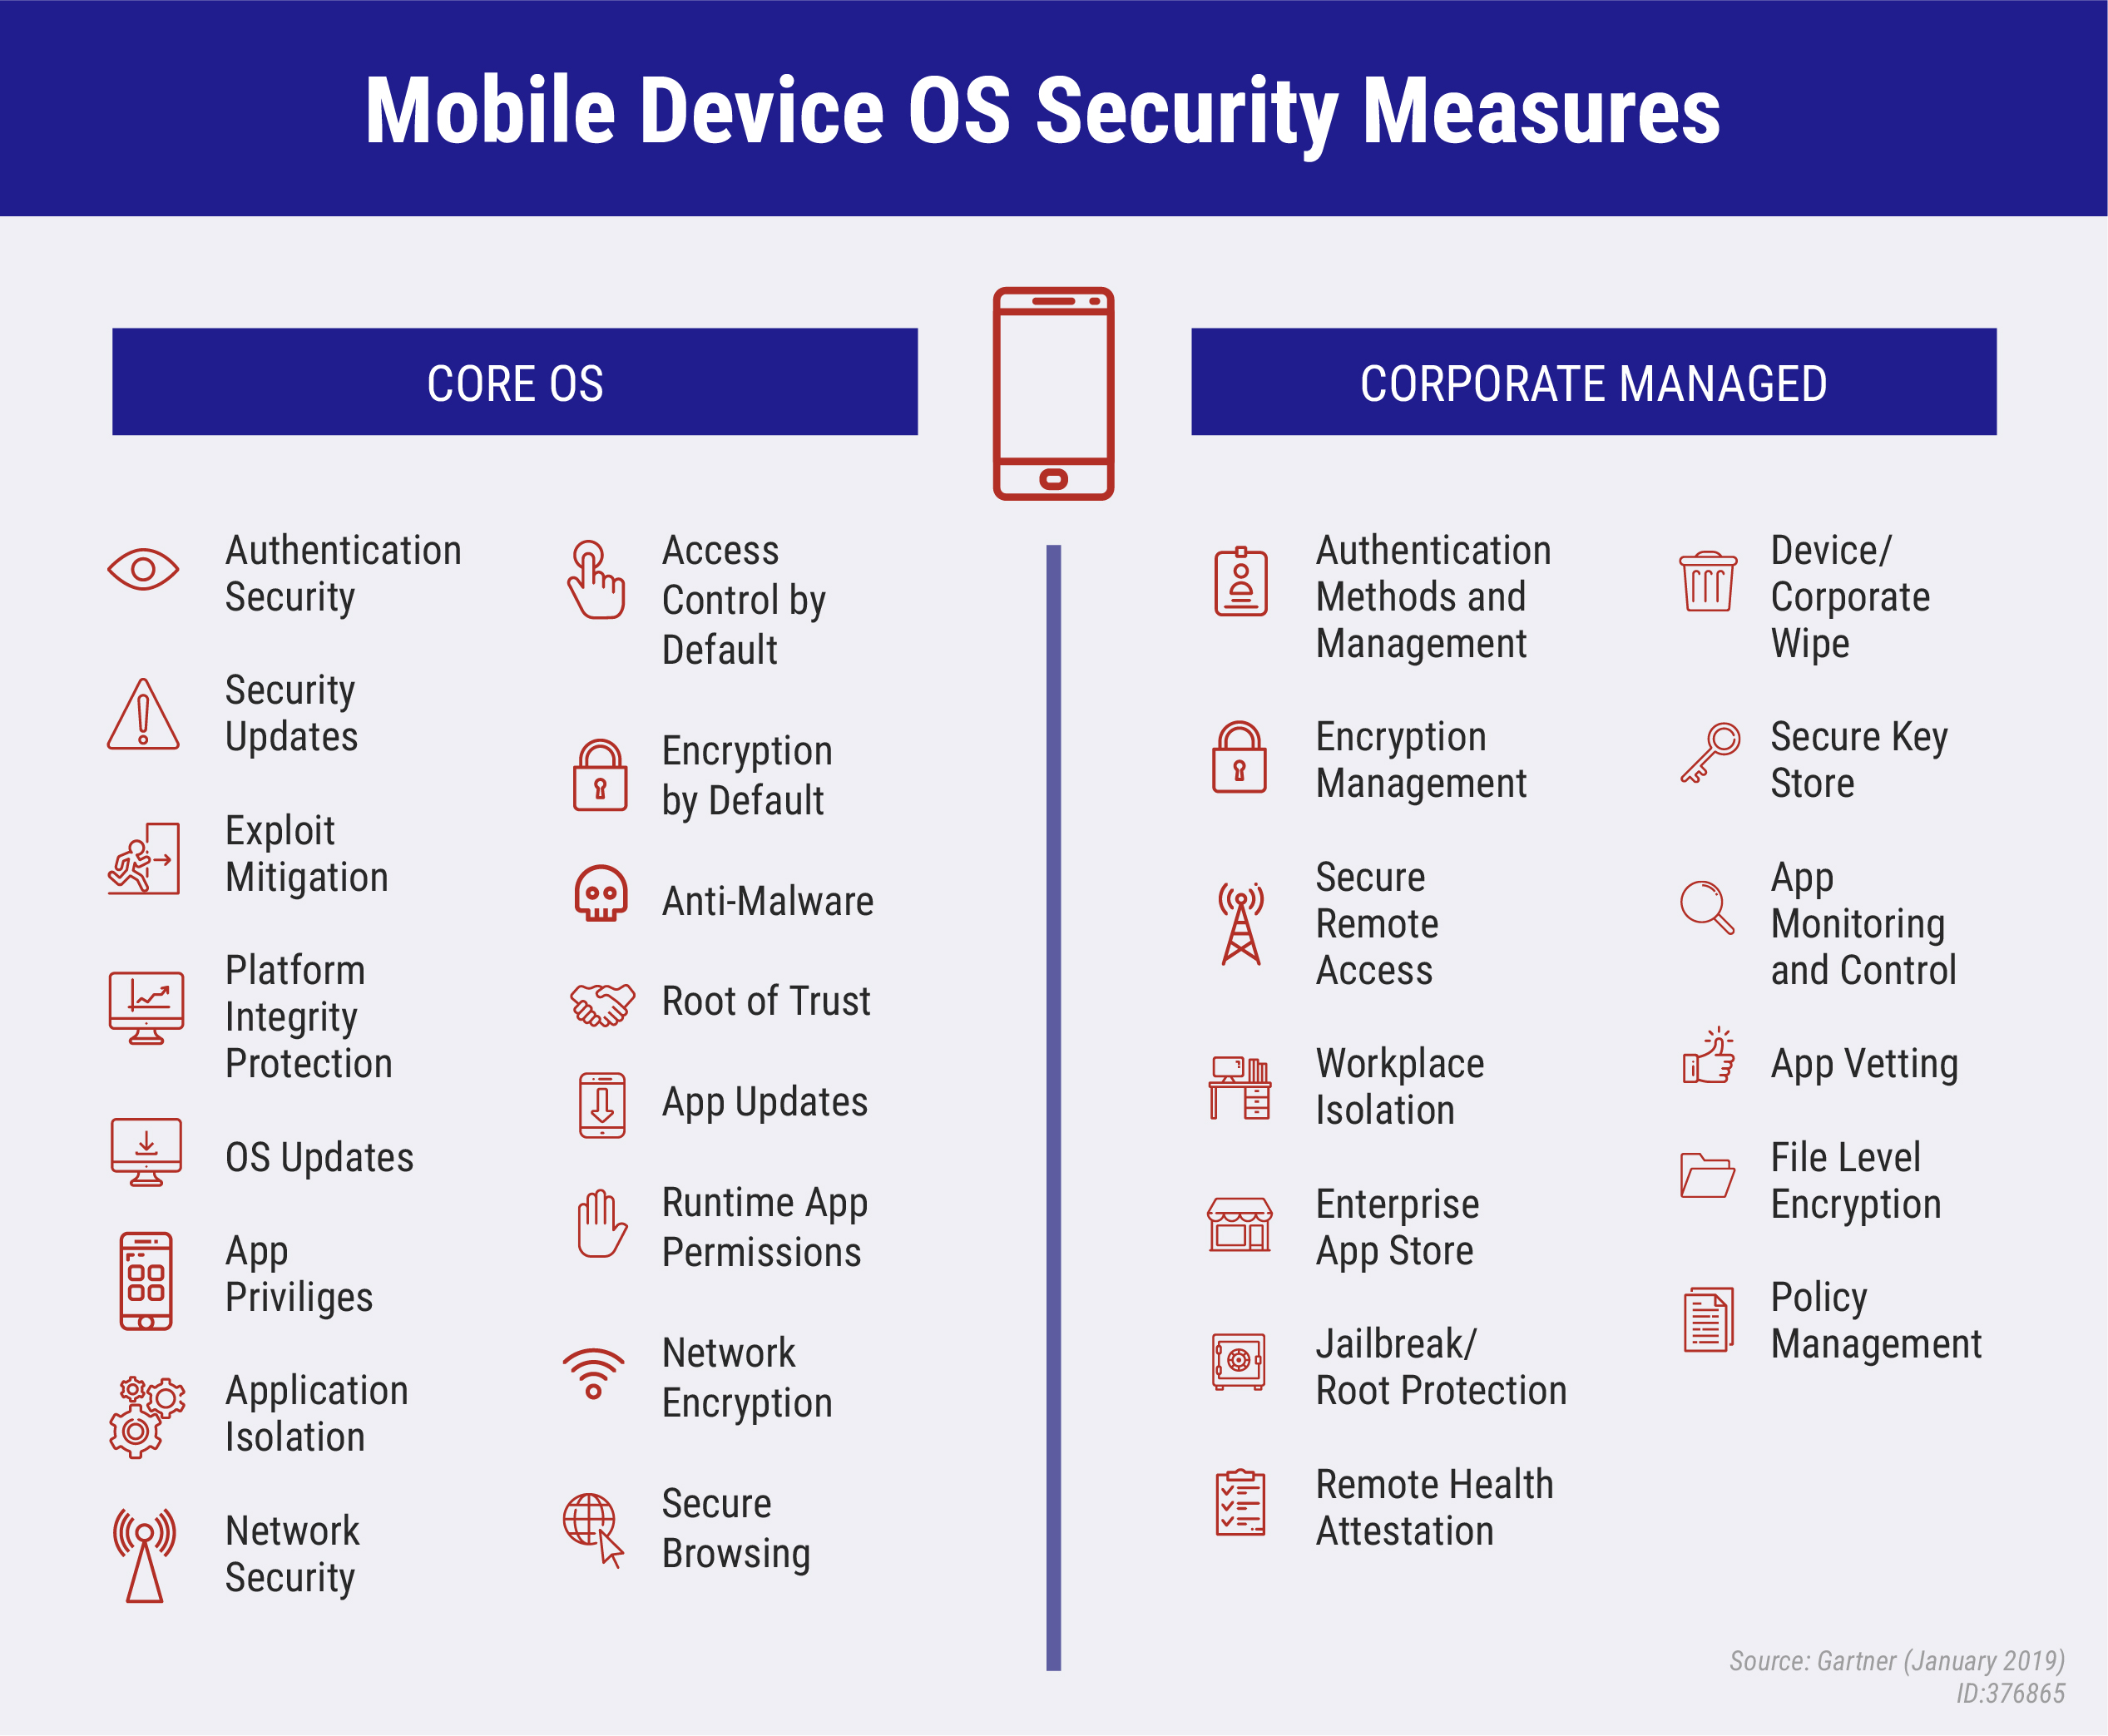 Mobile OS Security Measures